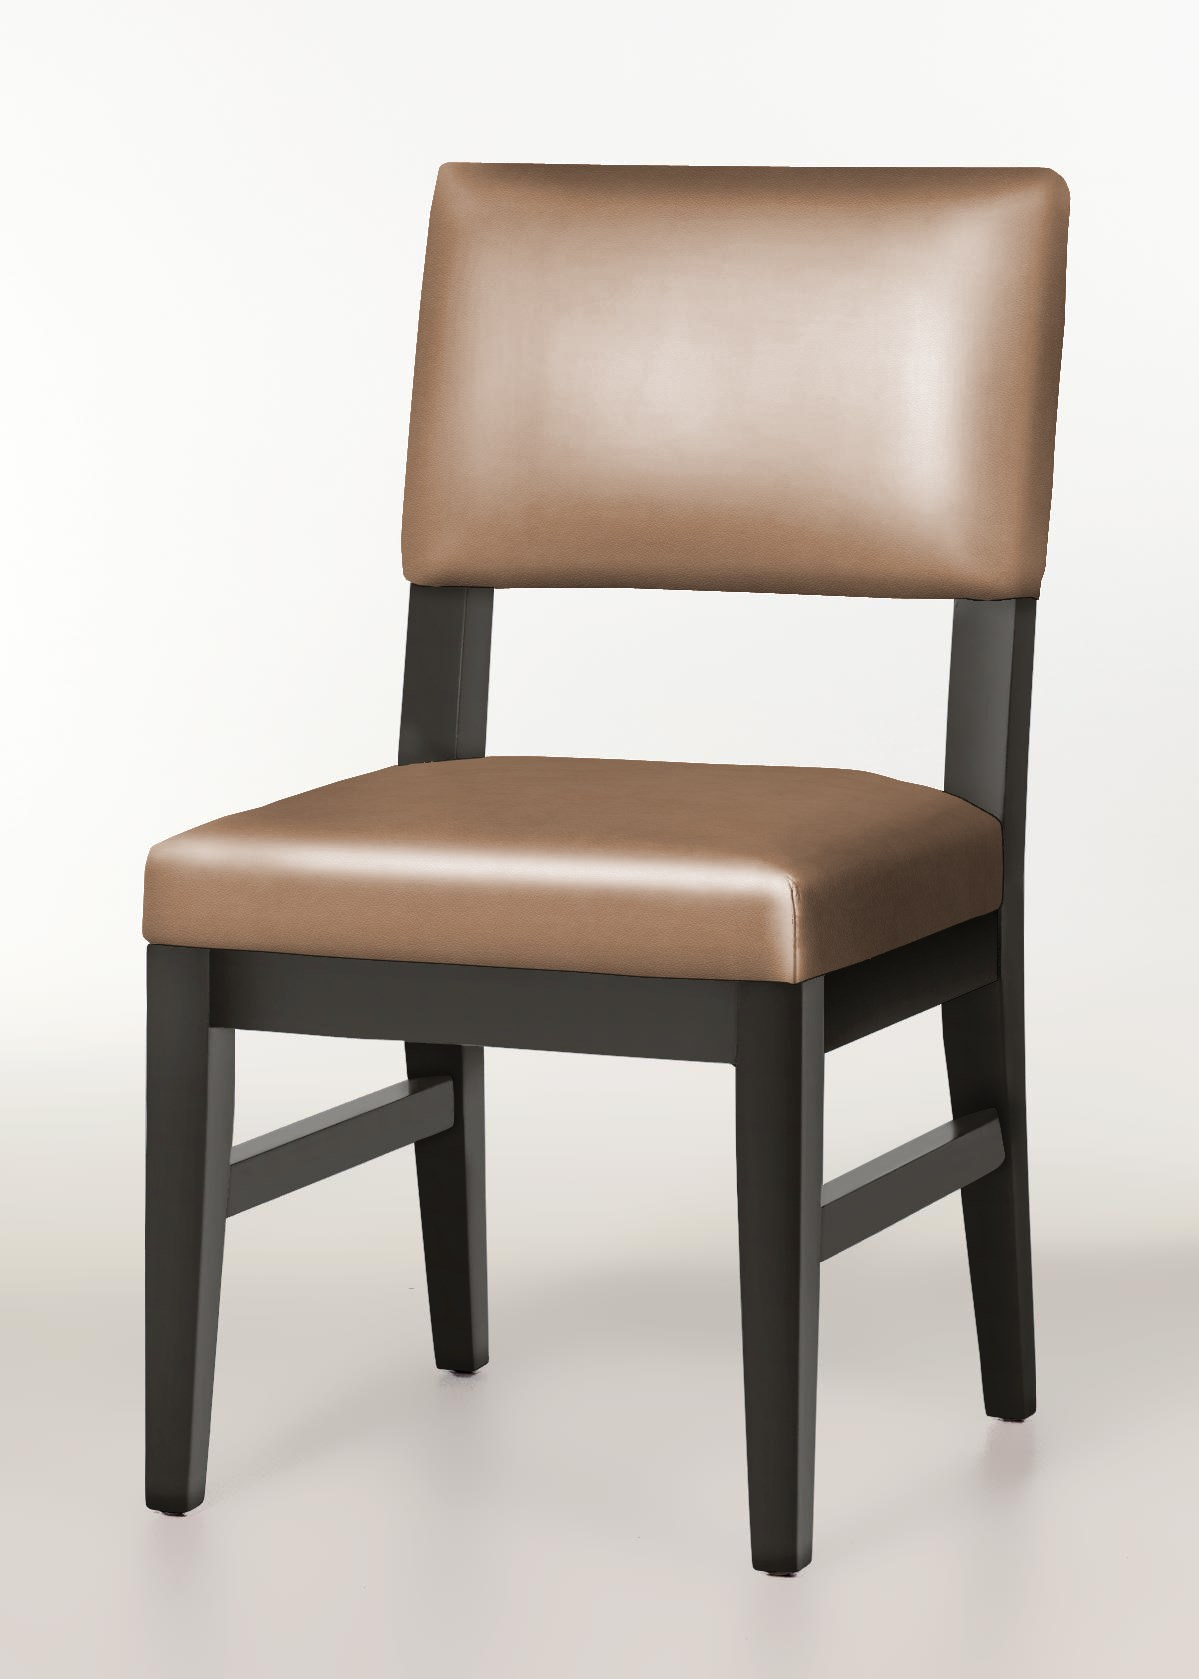 leather side chair rentals atlanta whitney zoom